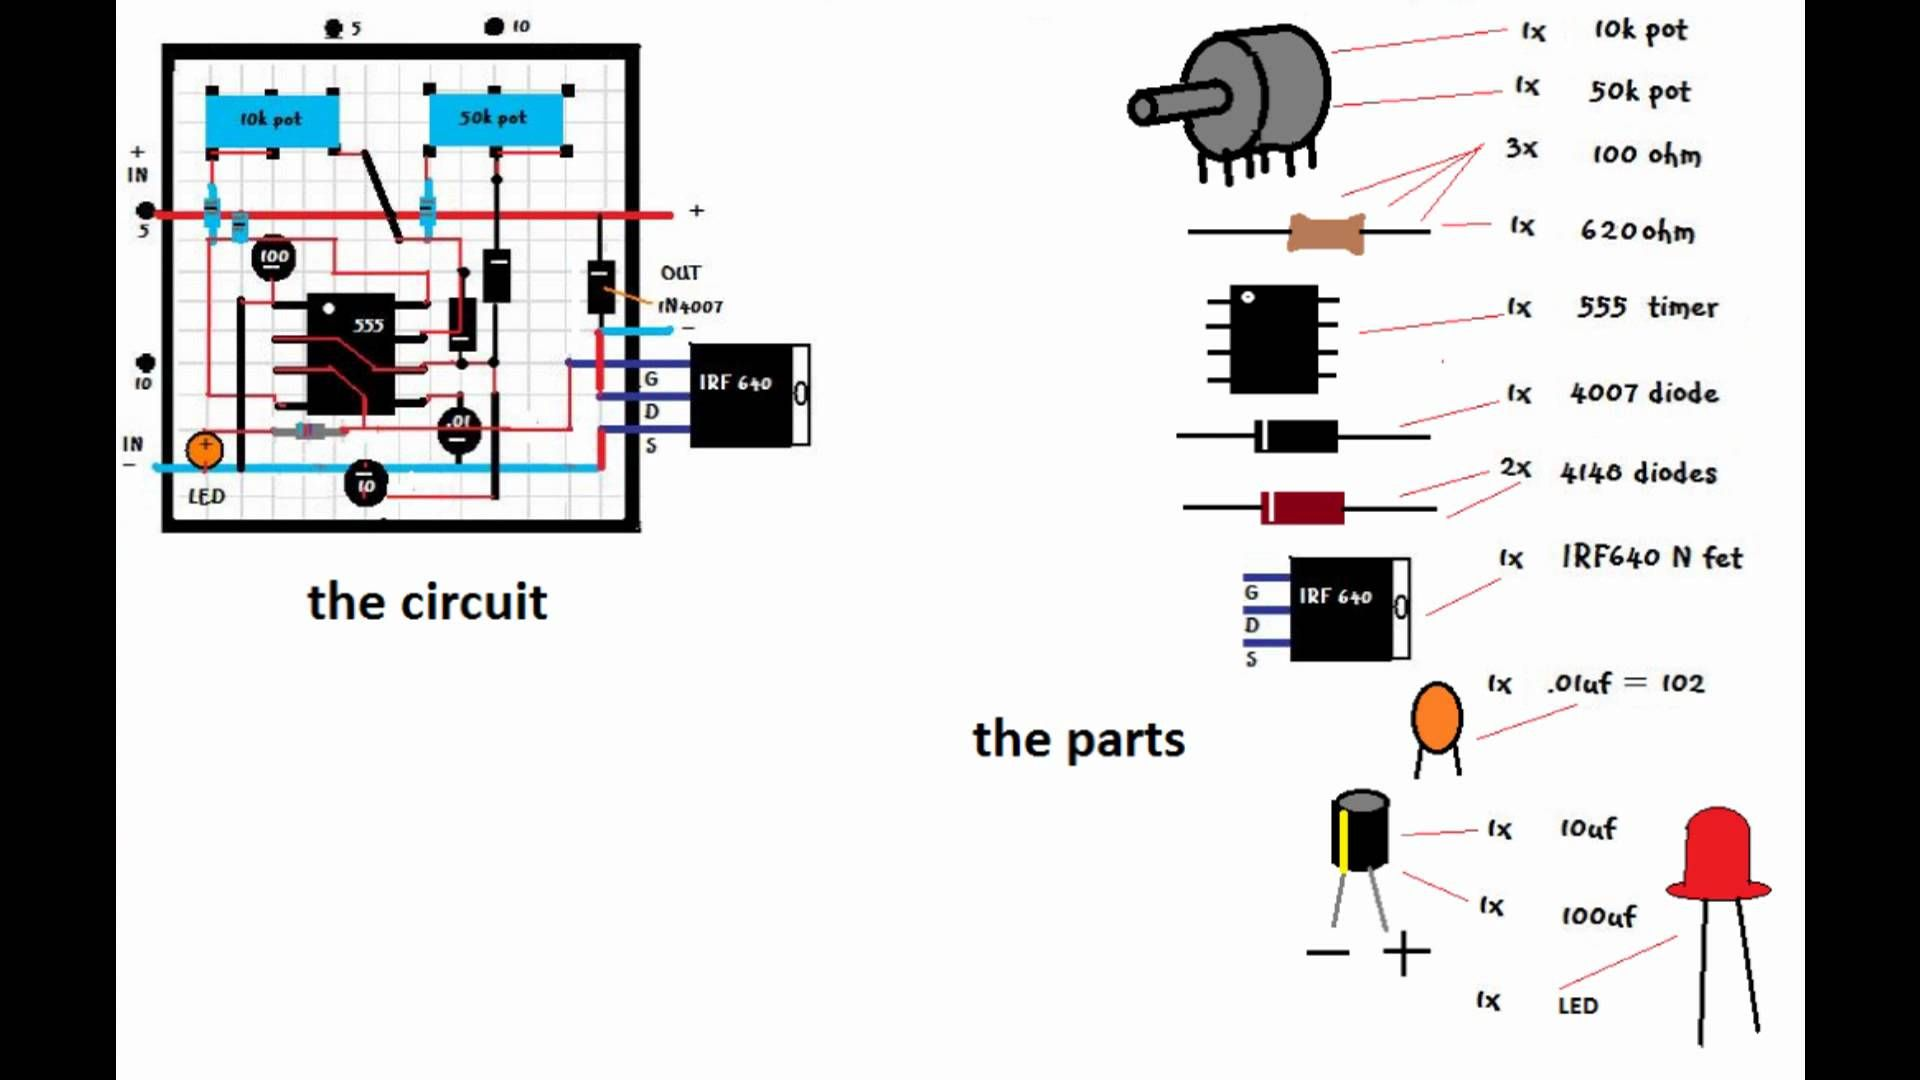 Wiring Diagram For Steam Generator : Hho pwm wiring diagram hydrogen generator